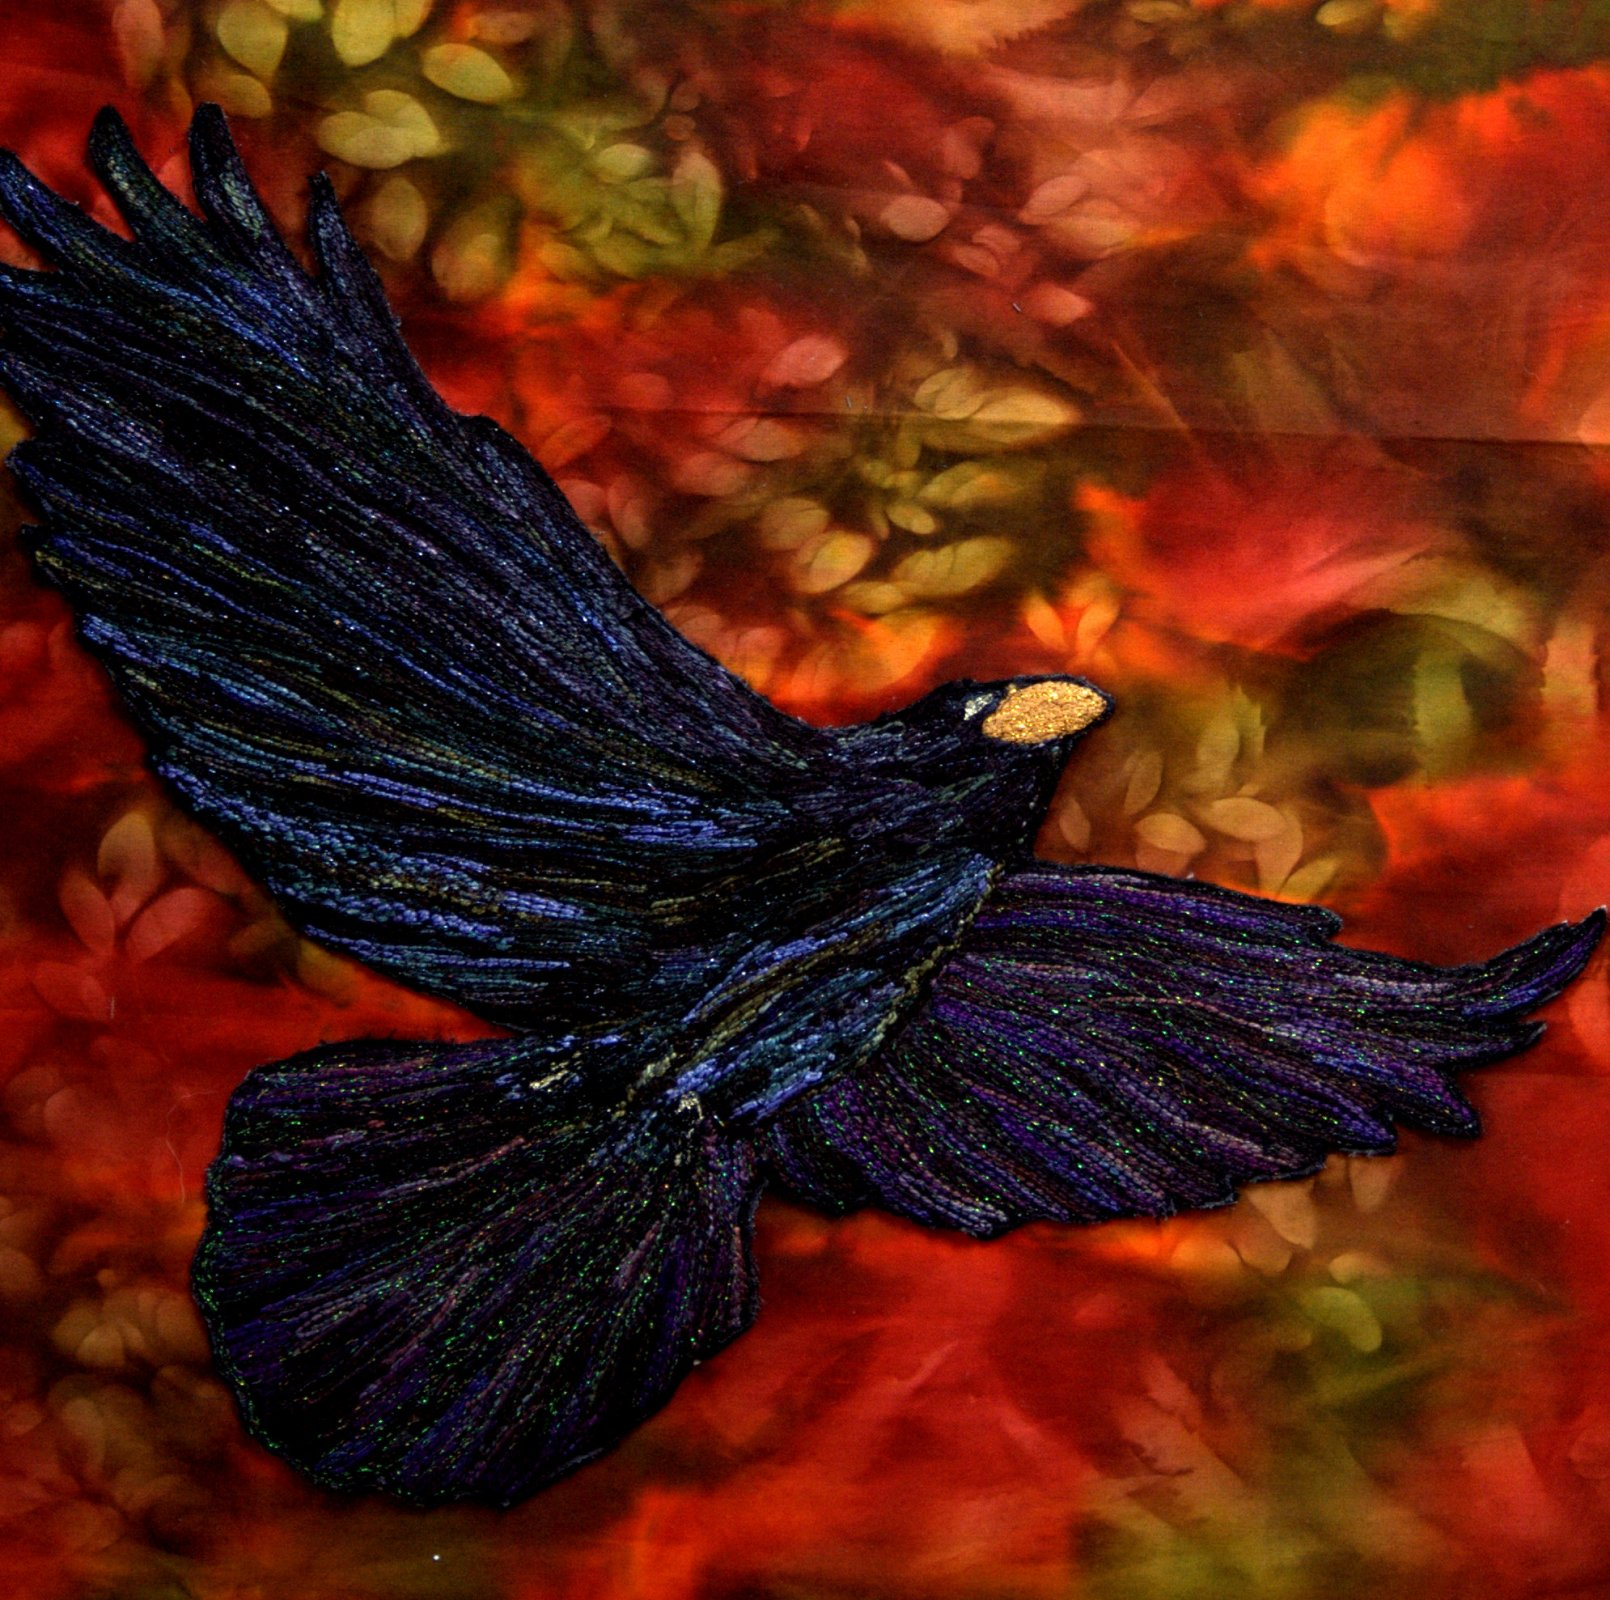 RAVEN IN FLIGHT STITCHED PHOTO ART CARD